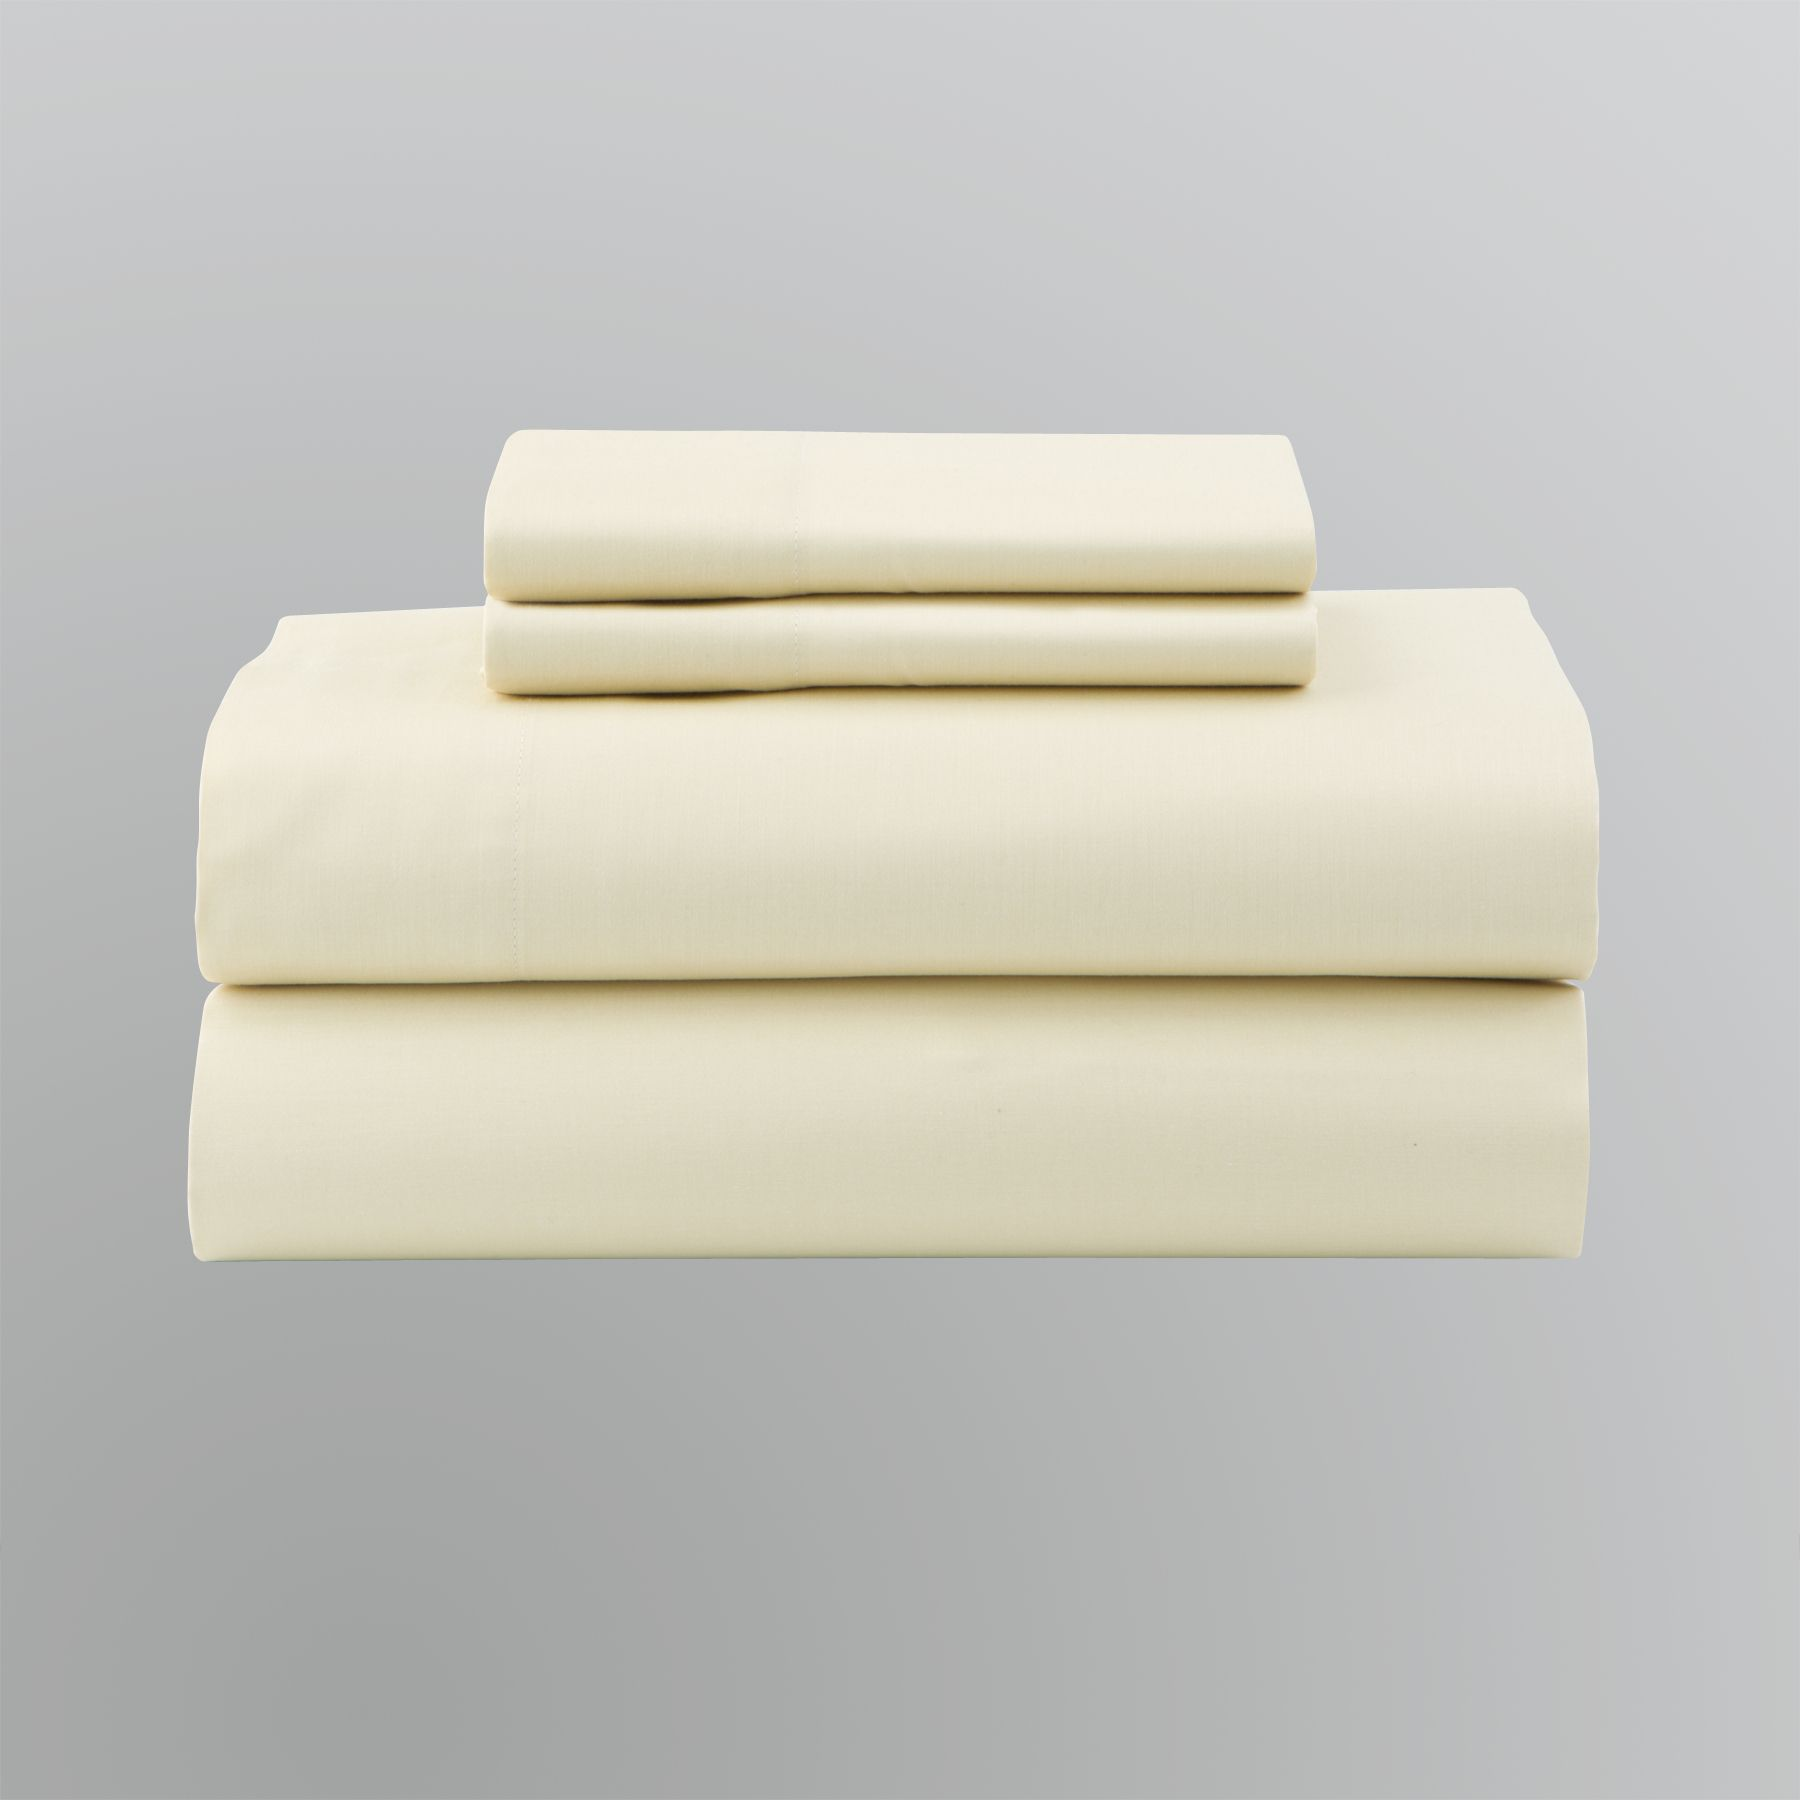 SIMMONS 350 Thread Count Sheet Set - Vanilla